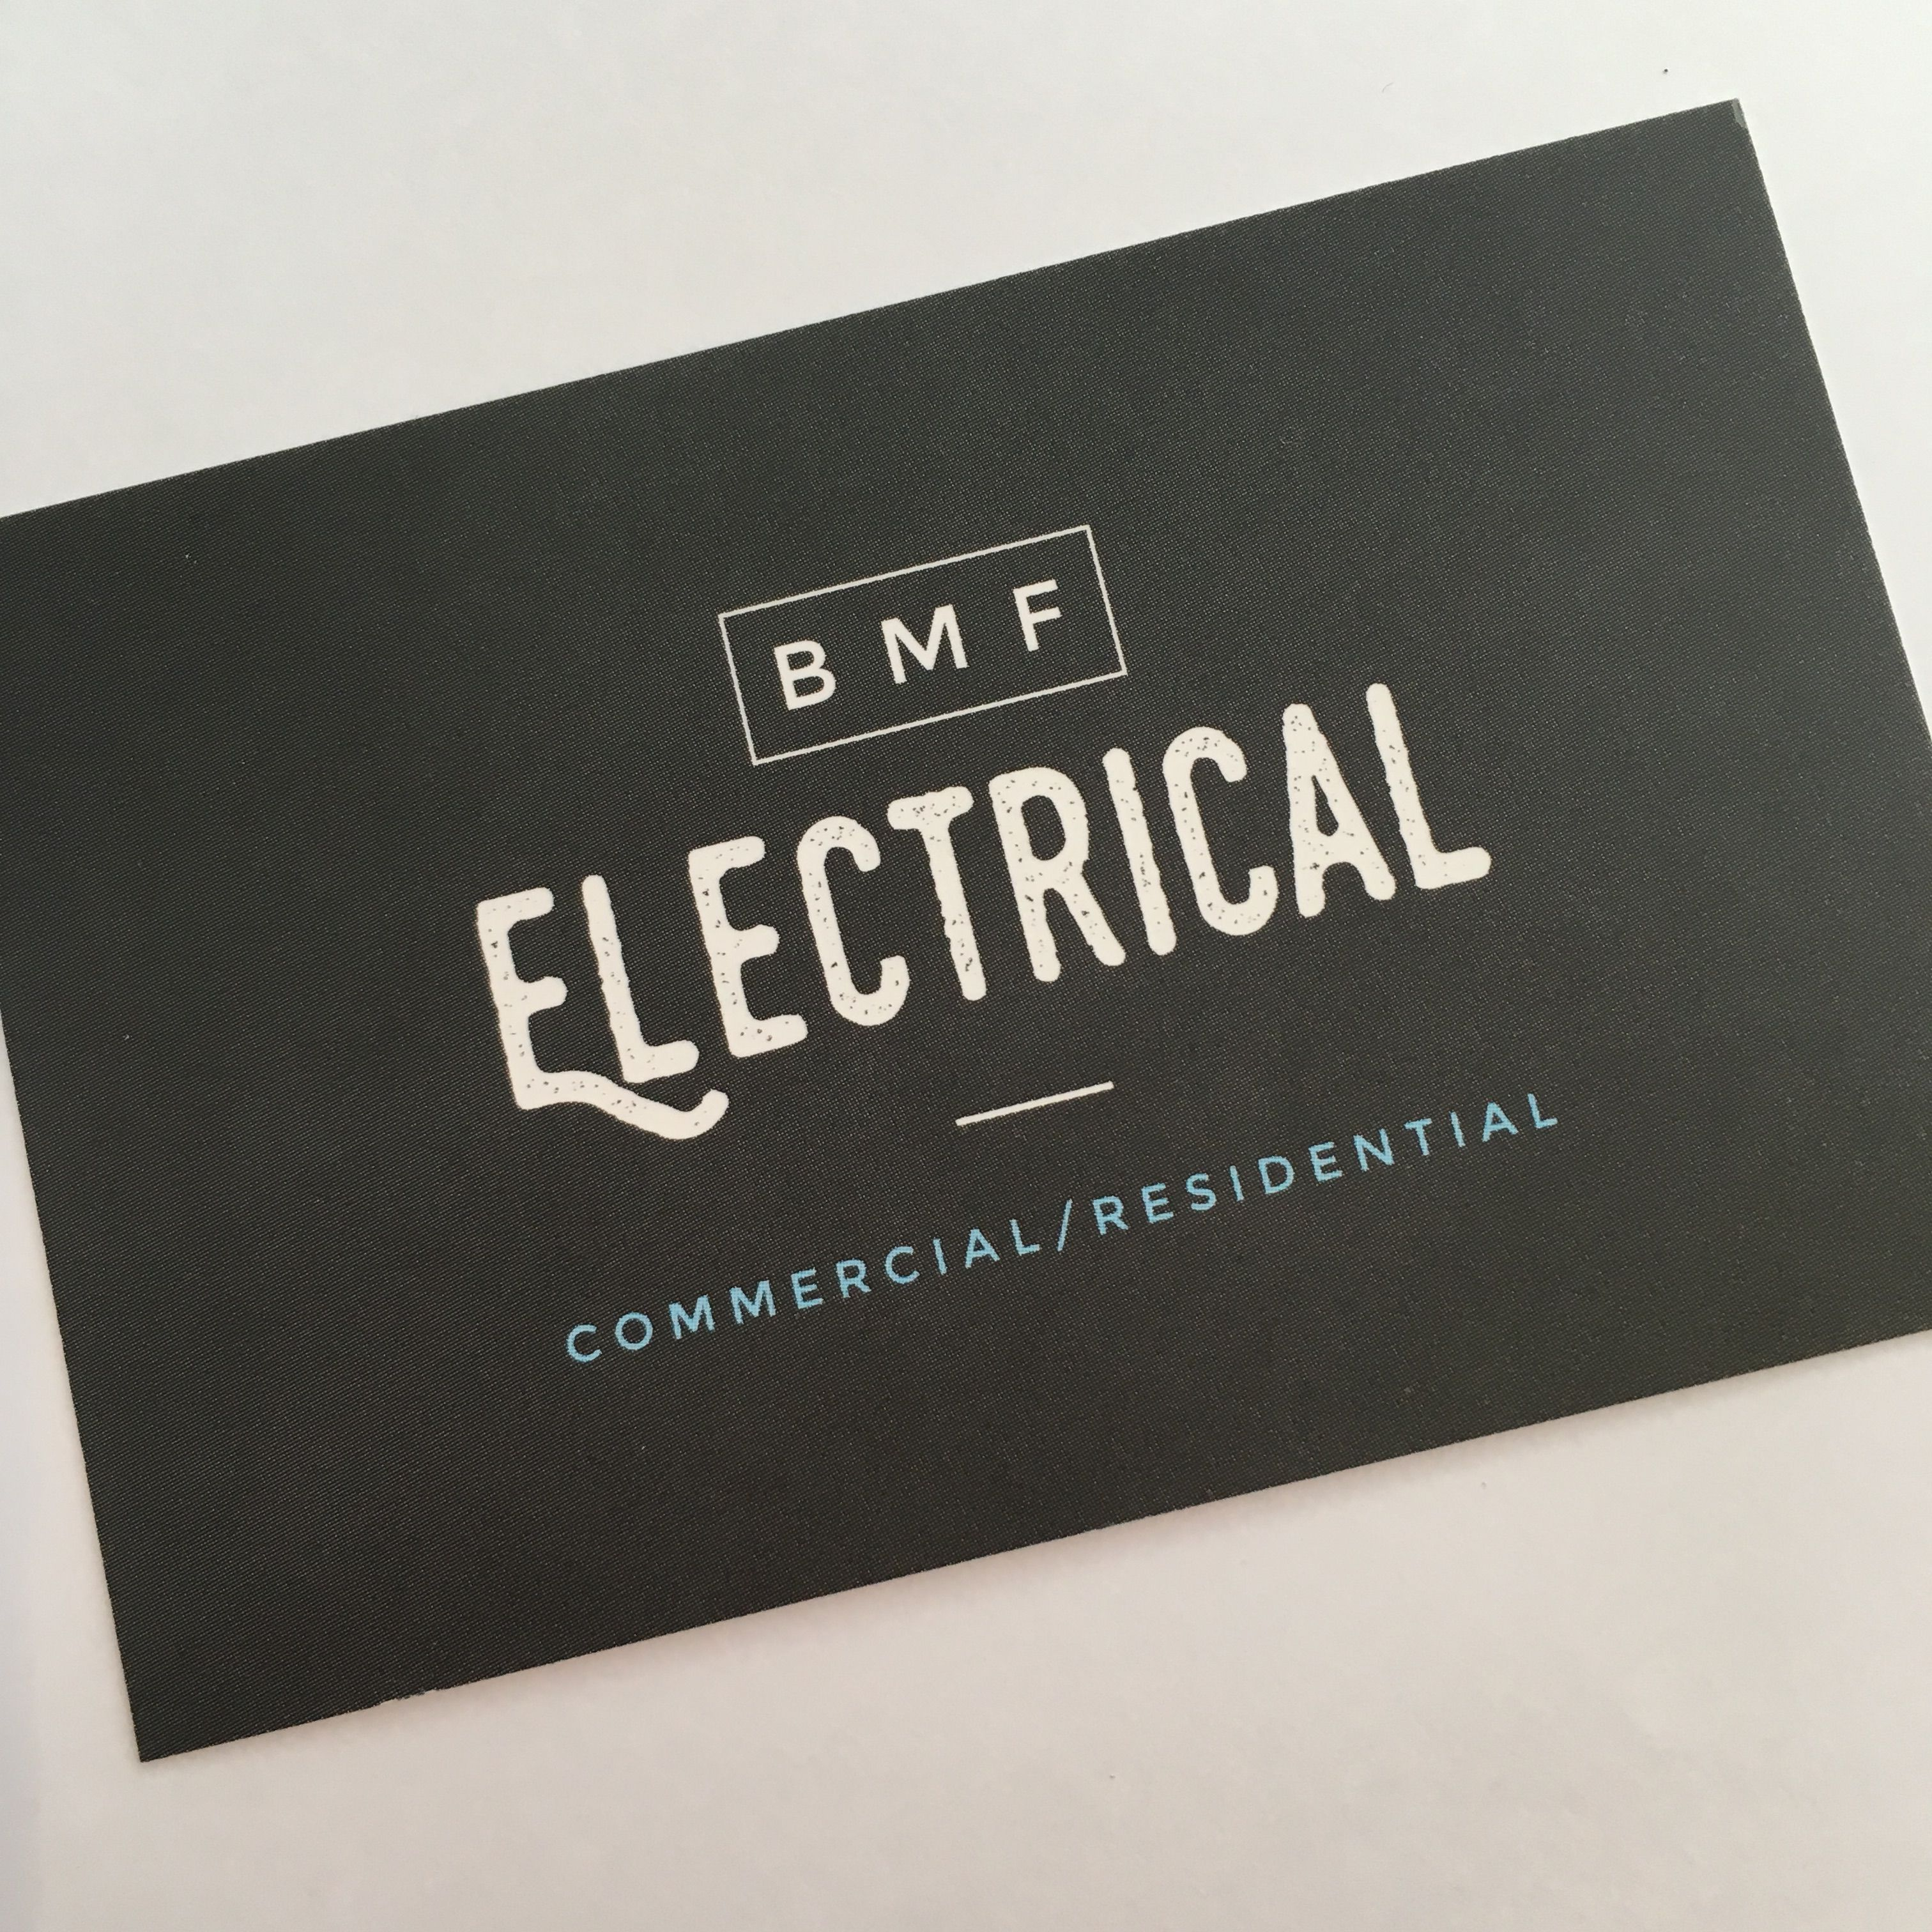 Recent business card and logo design for electrician based in Stock ...